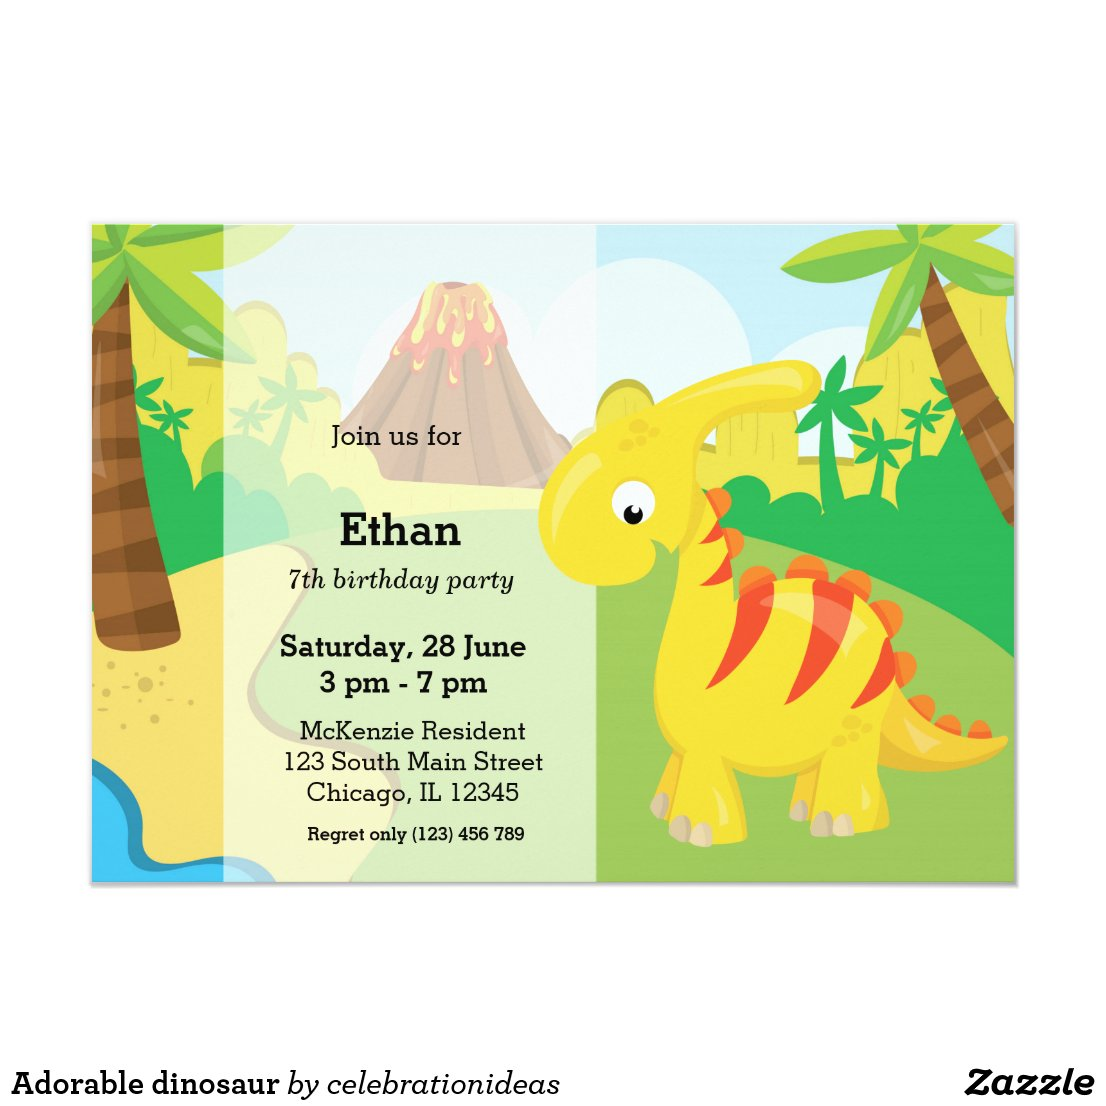 Adorable dinosaur card